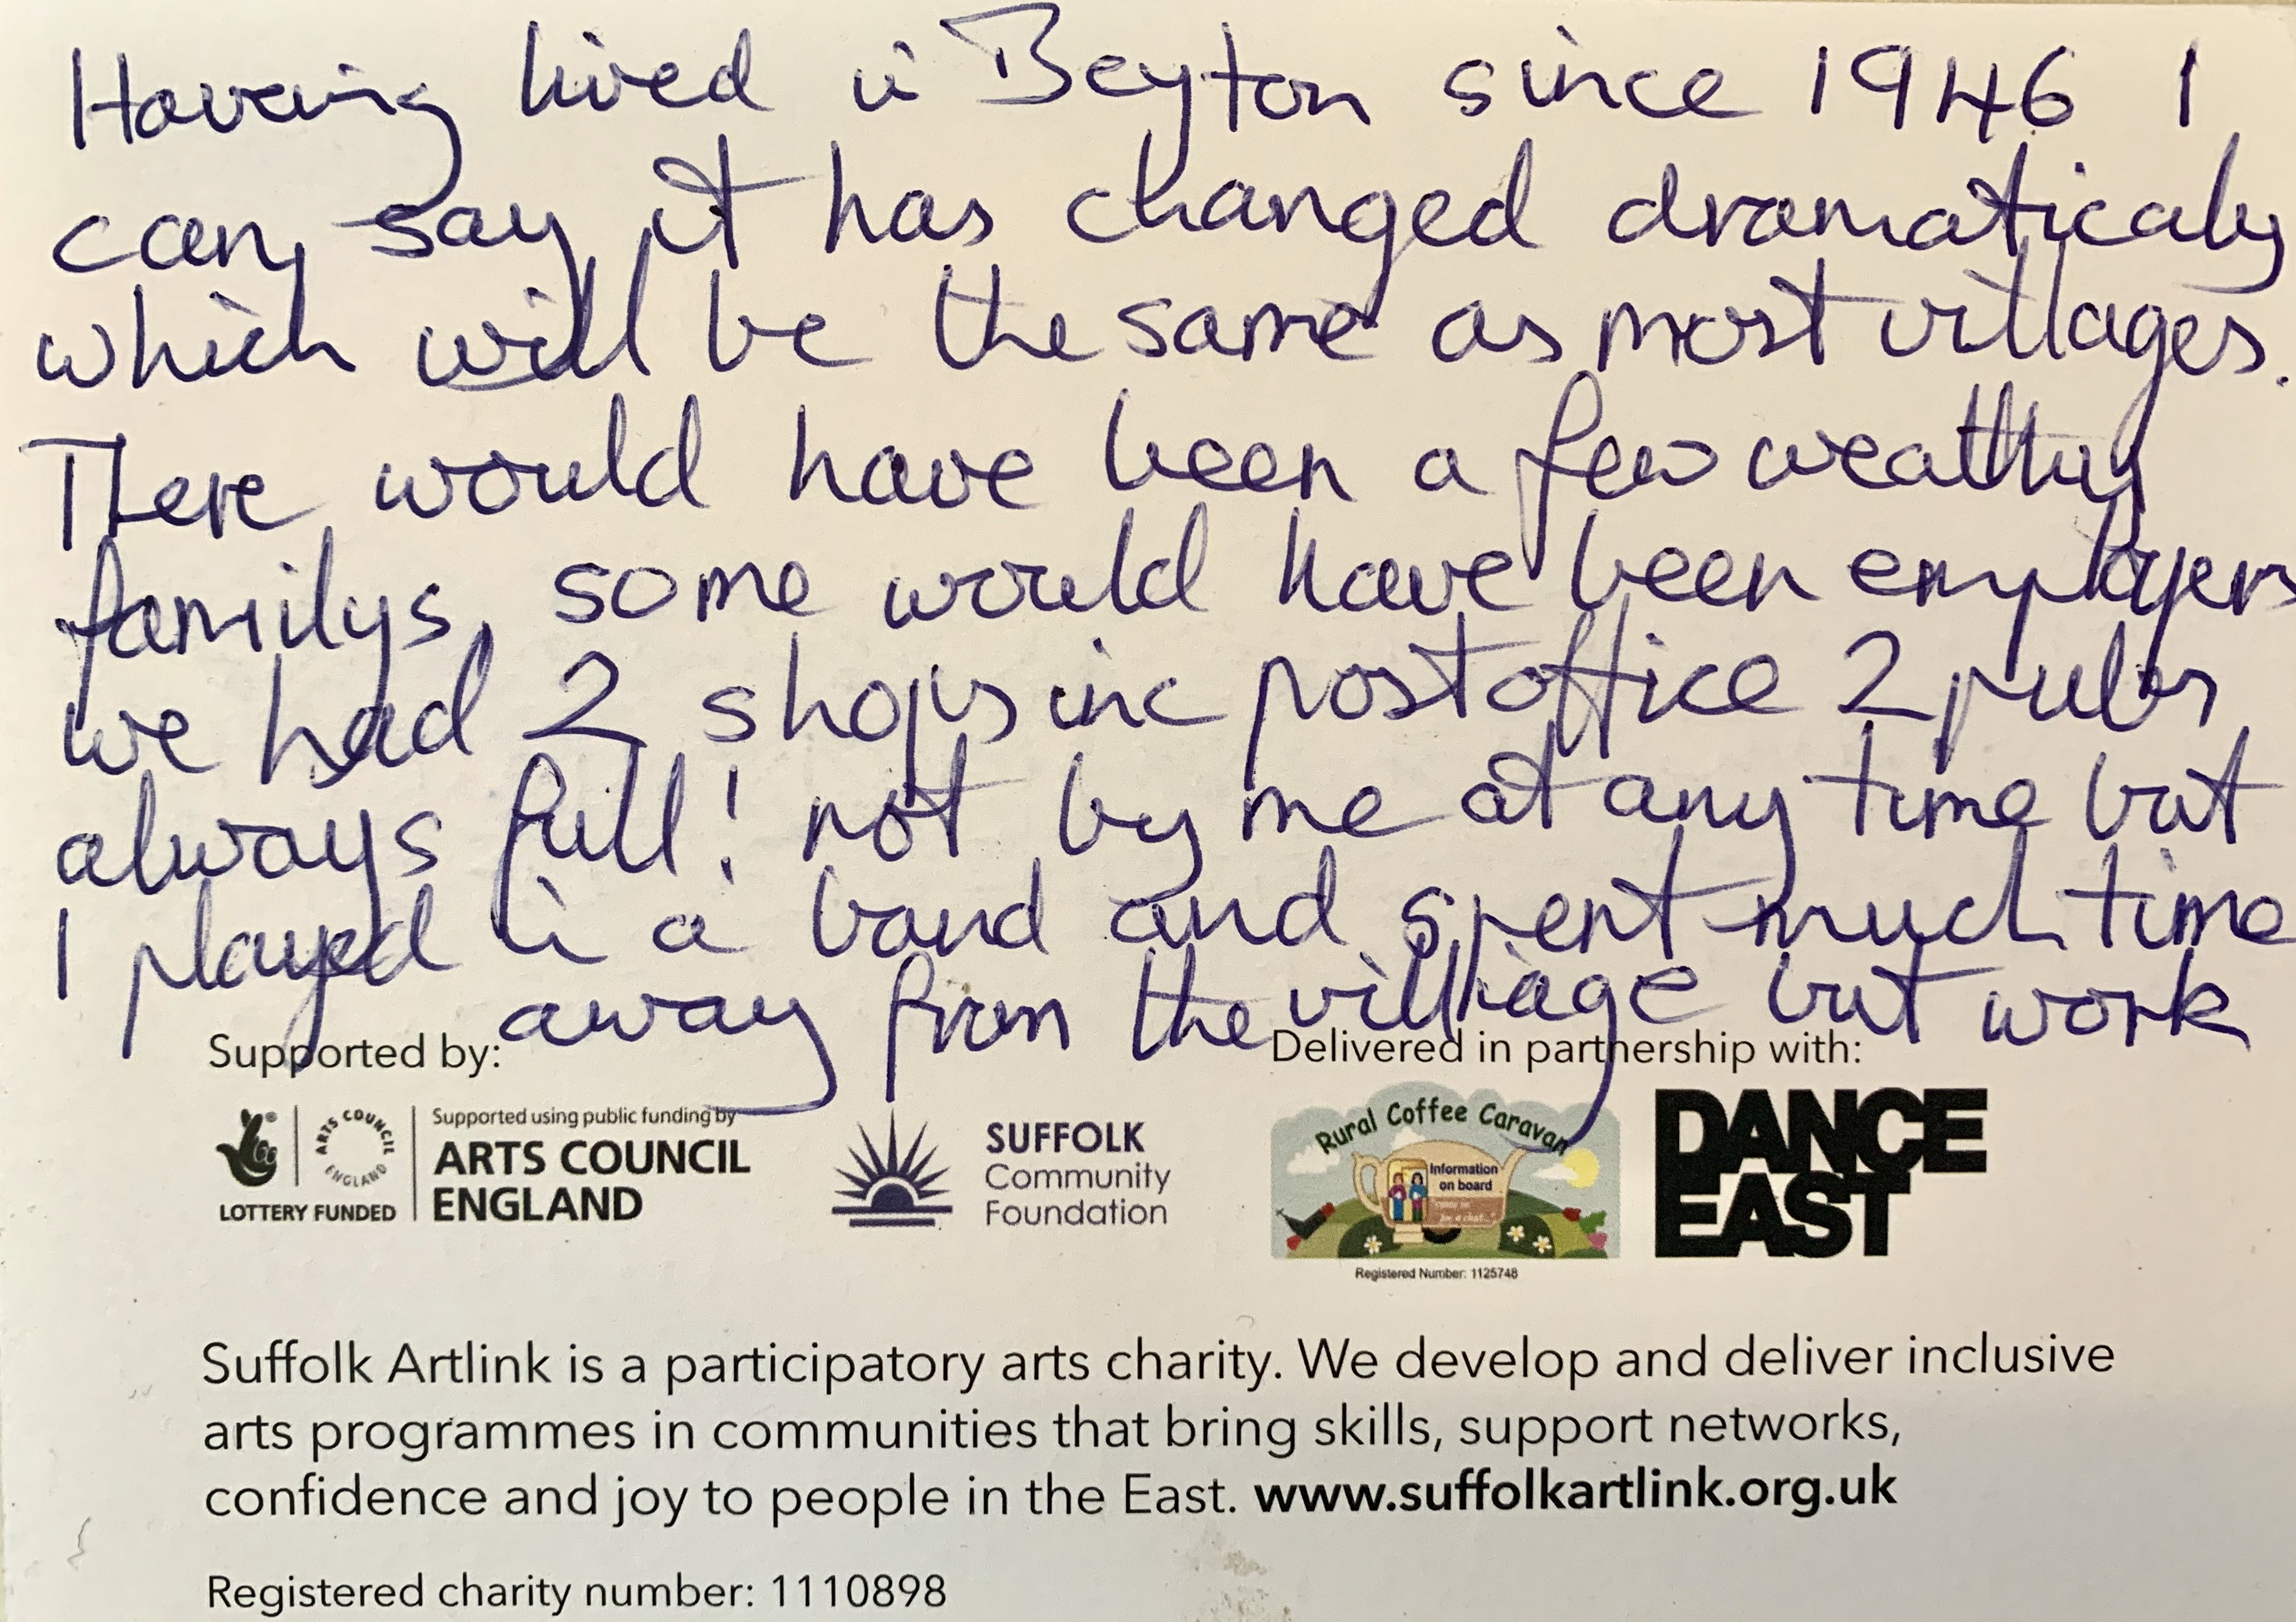 The reverse of the previous card, the writer says the village has changed dramatically over the years.